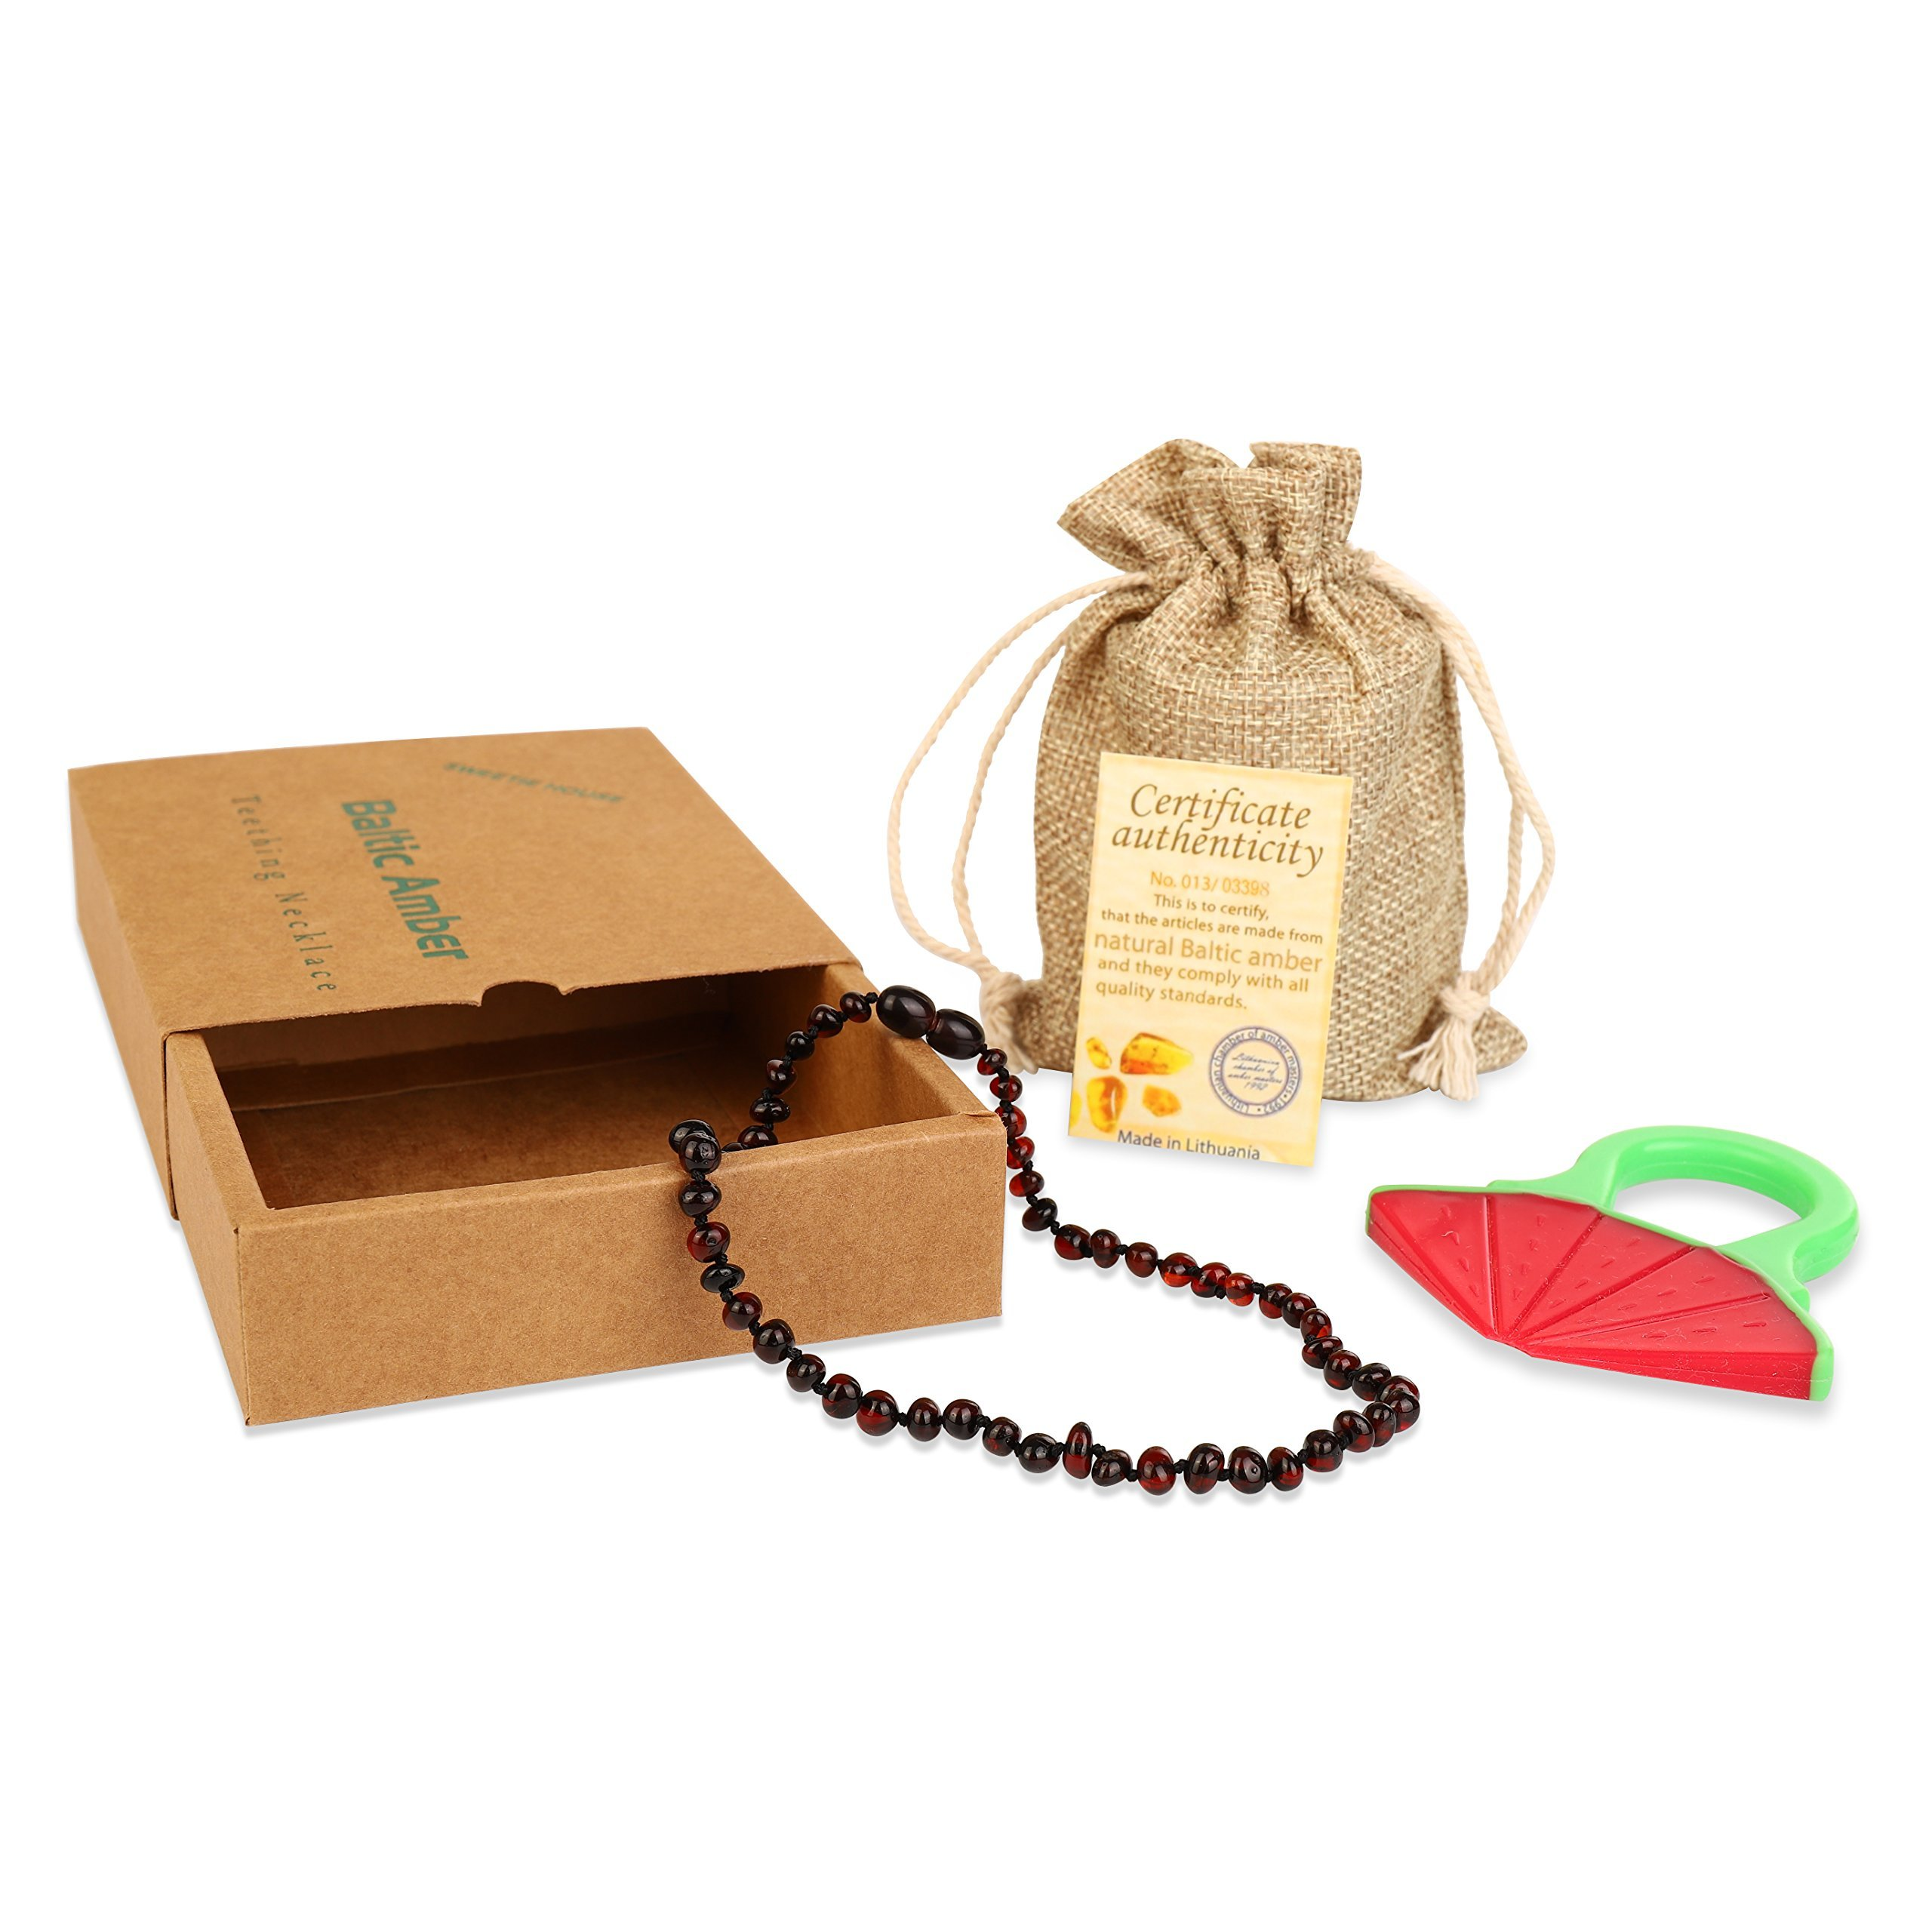 Baby Baltic Amber Teething Necklace Jewelry - (Cherry) Anti-Flammatory, Drooling & Free Teething Toy Pain Reduce - Reduces Tension and Fear, Teething Necklace For 3 to 36 Months Babies,Boys and Girls by Sweetie House (Image #3)